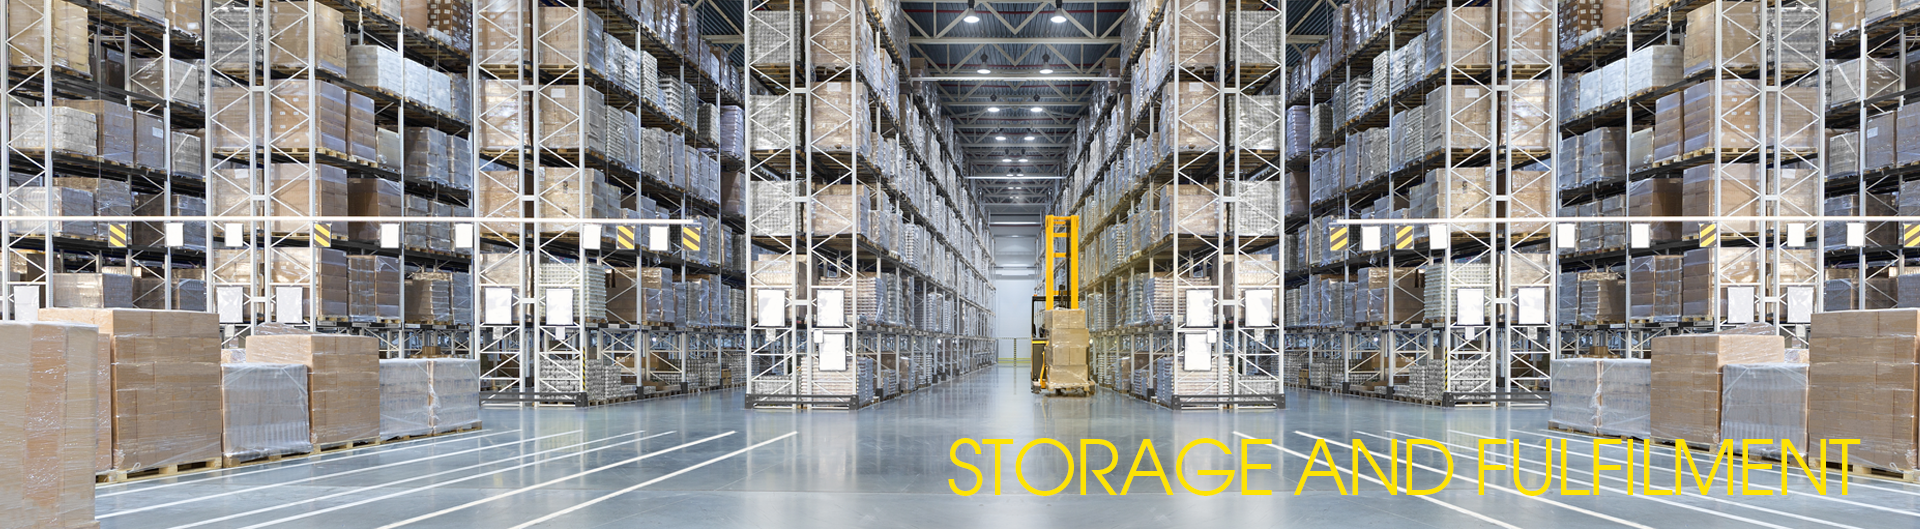 Storage and Fulfilment Banner